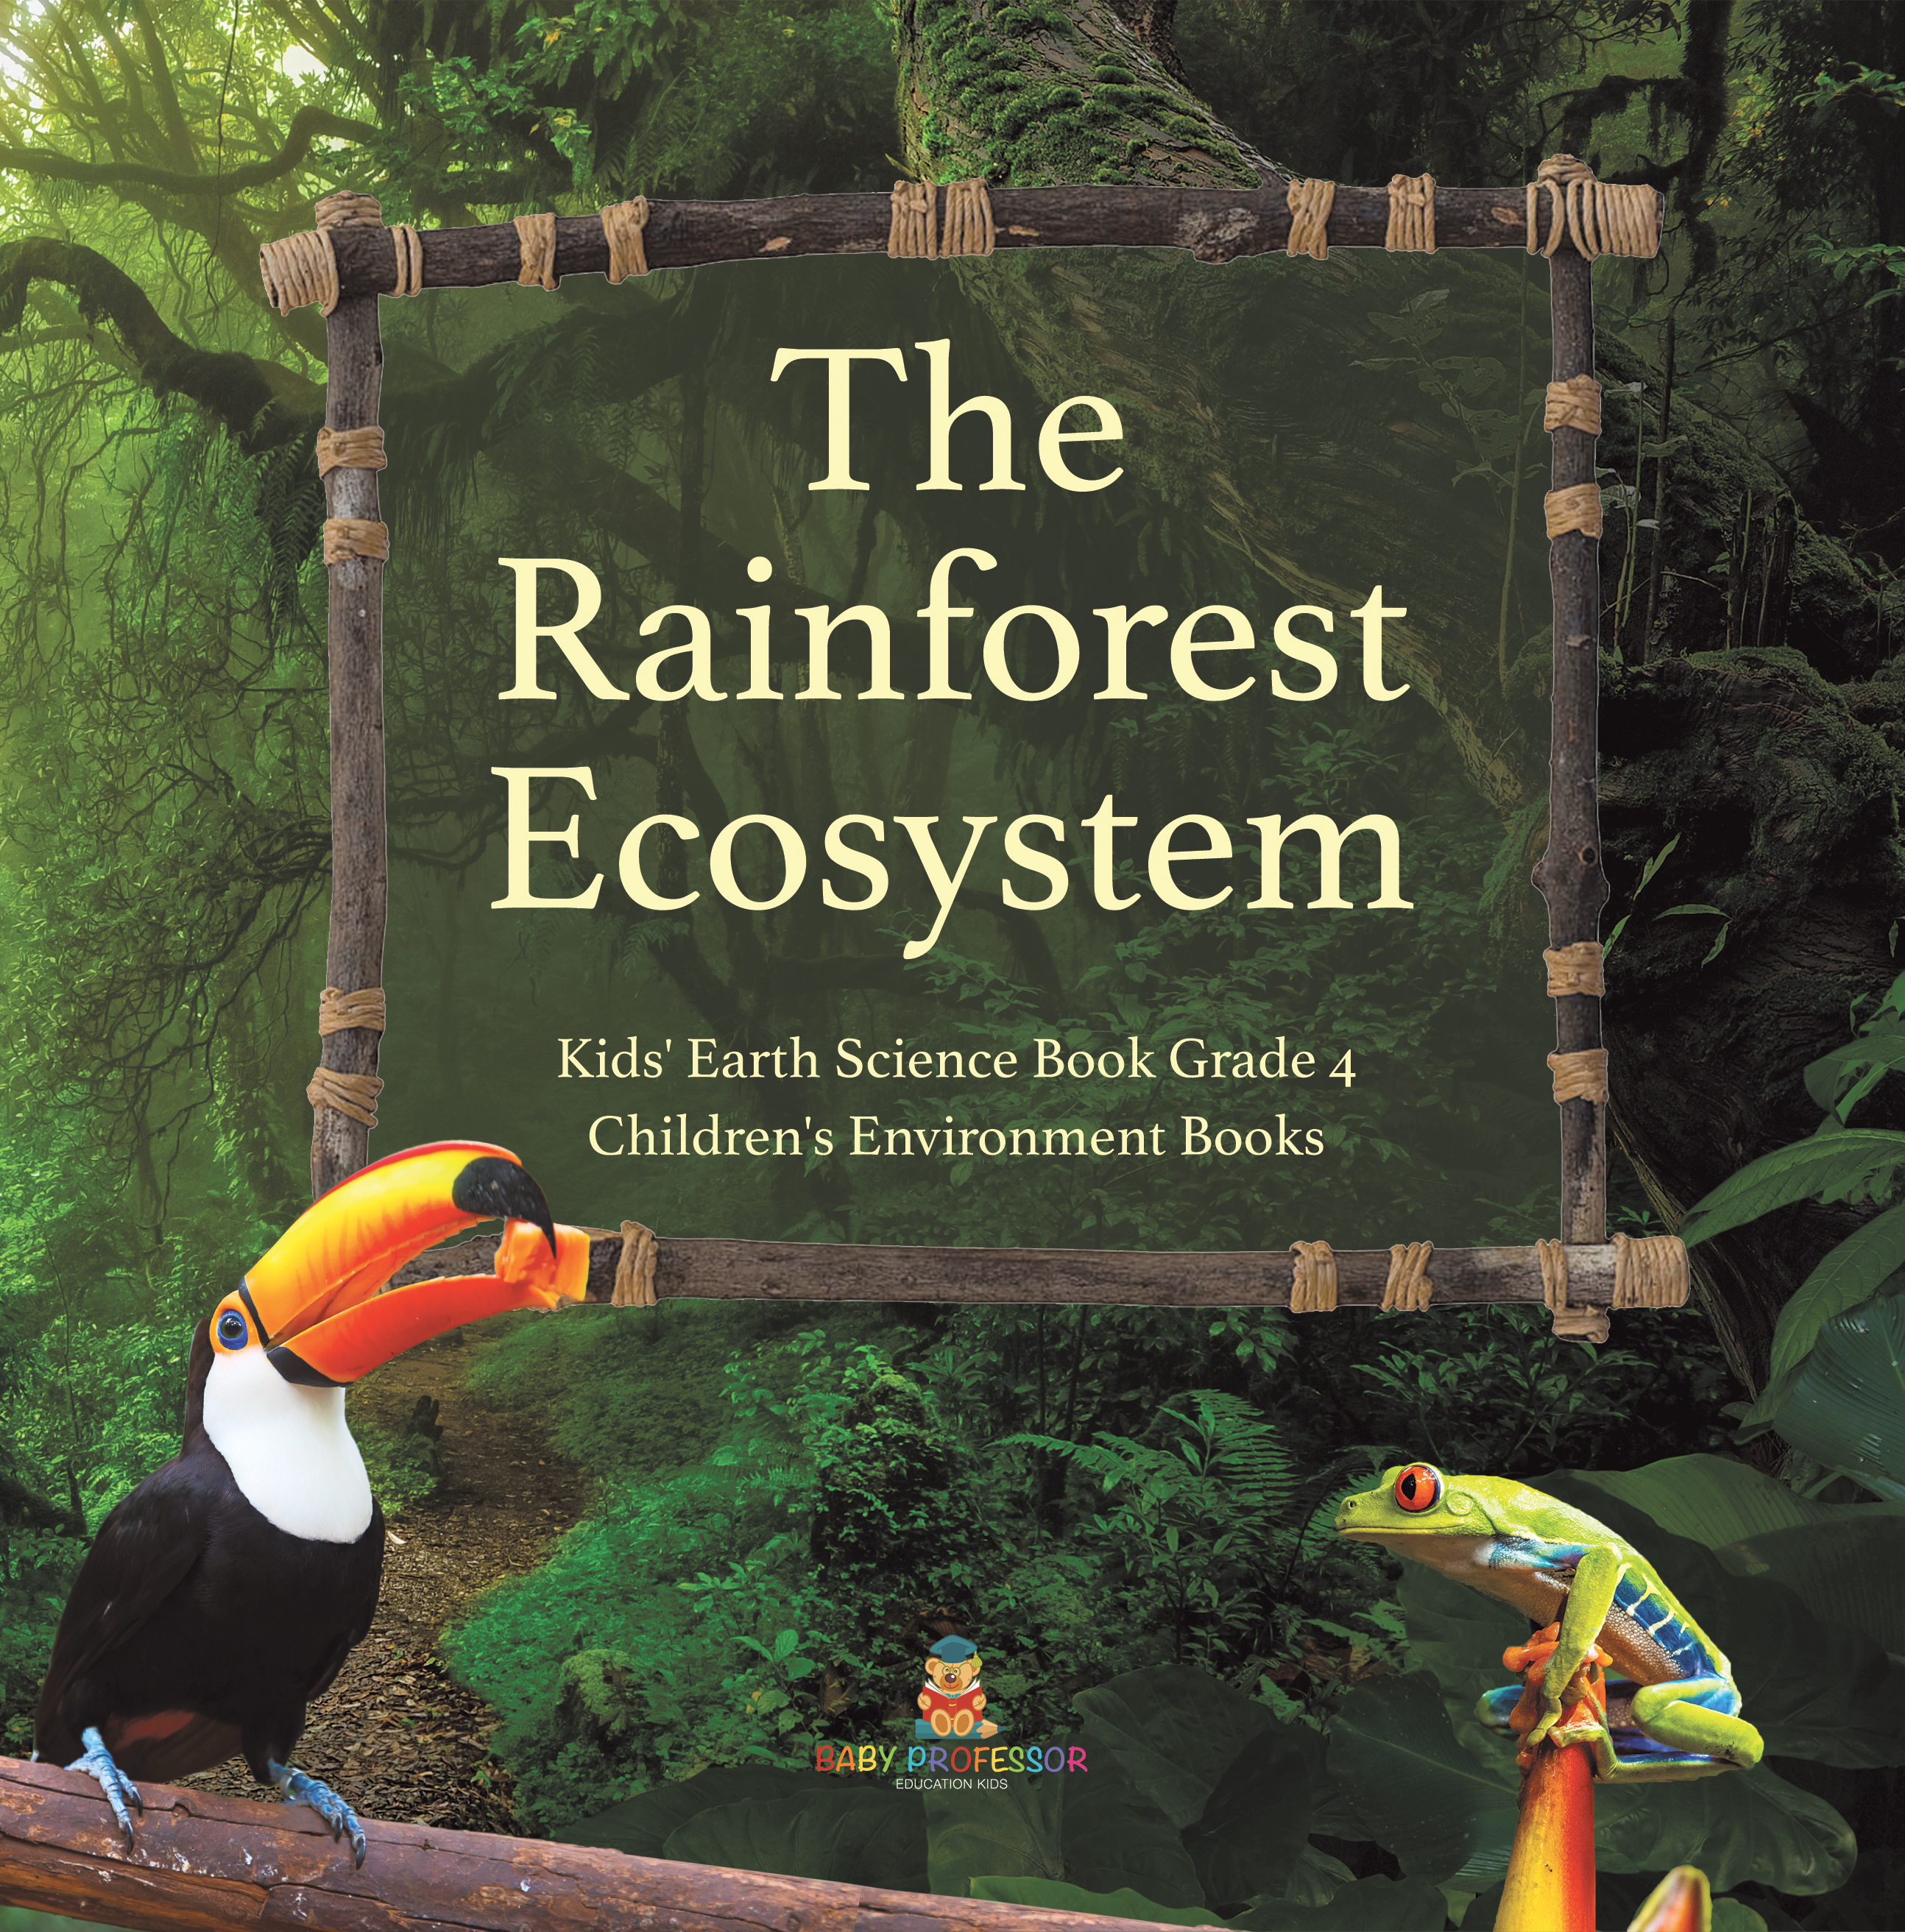 The Rainforest Ecosystem | Kids' Earth Science Book Grade 4 | Children's Environment Books